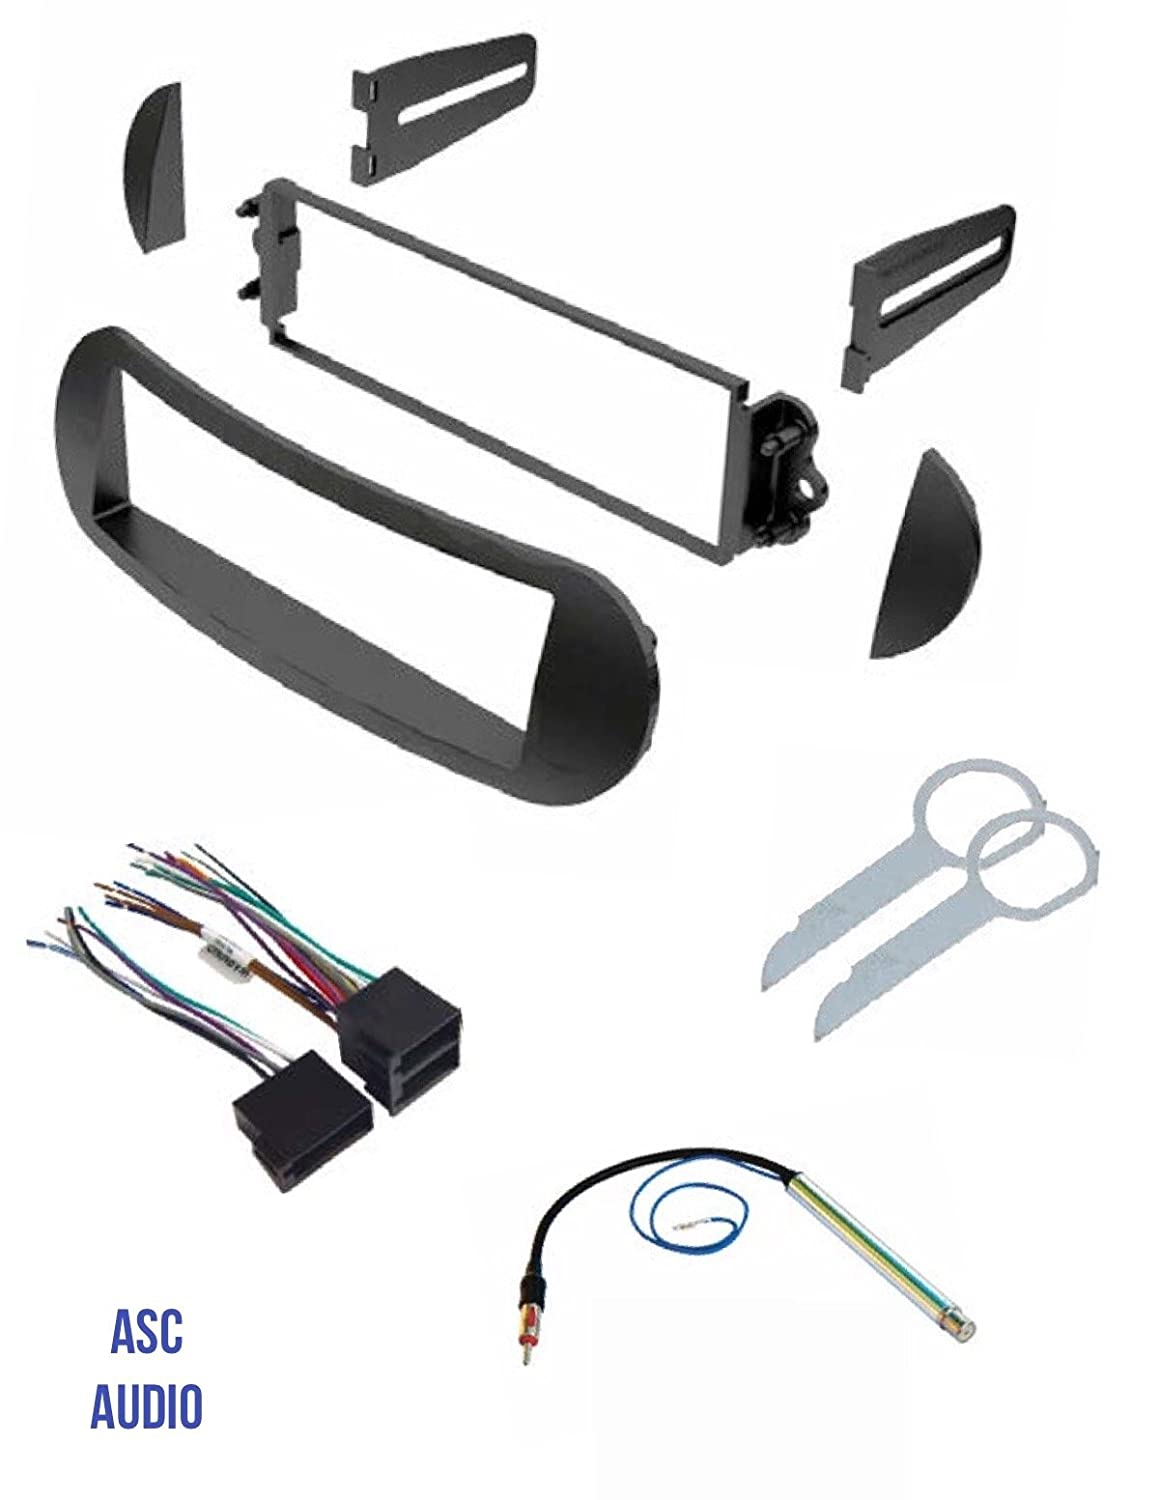 Asc Car Stereo Dash Kit Wire Harness Antenna Adapter 2002 Beetle Door Wiring Diagram And Radio Tool For Installing A Single Din Select Vw Volkswagen